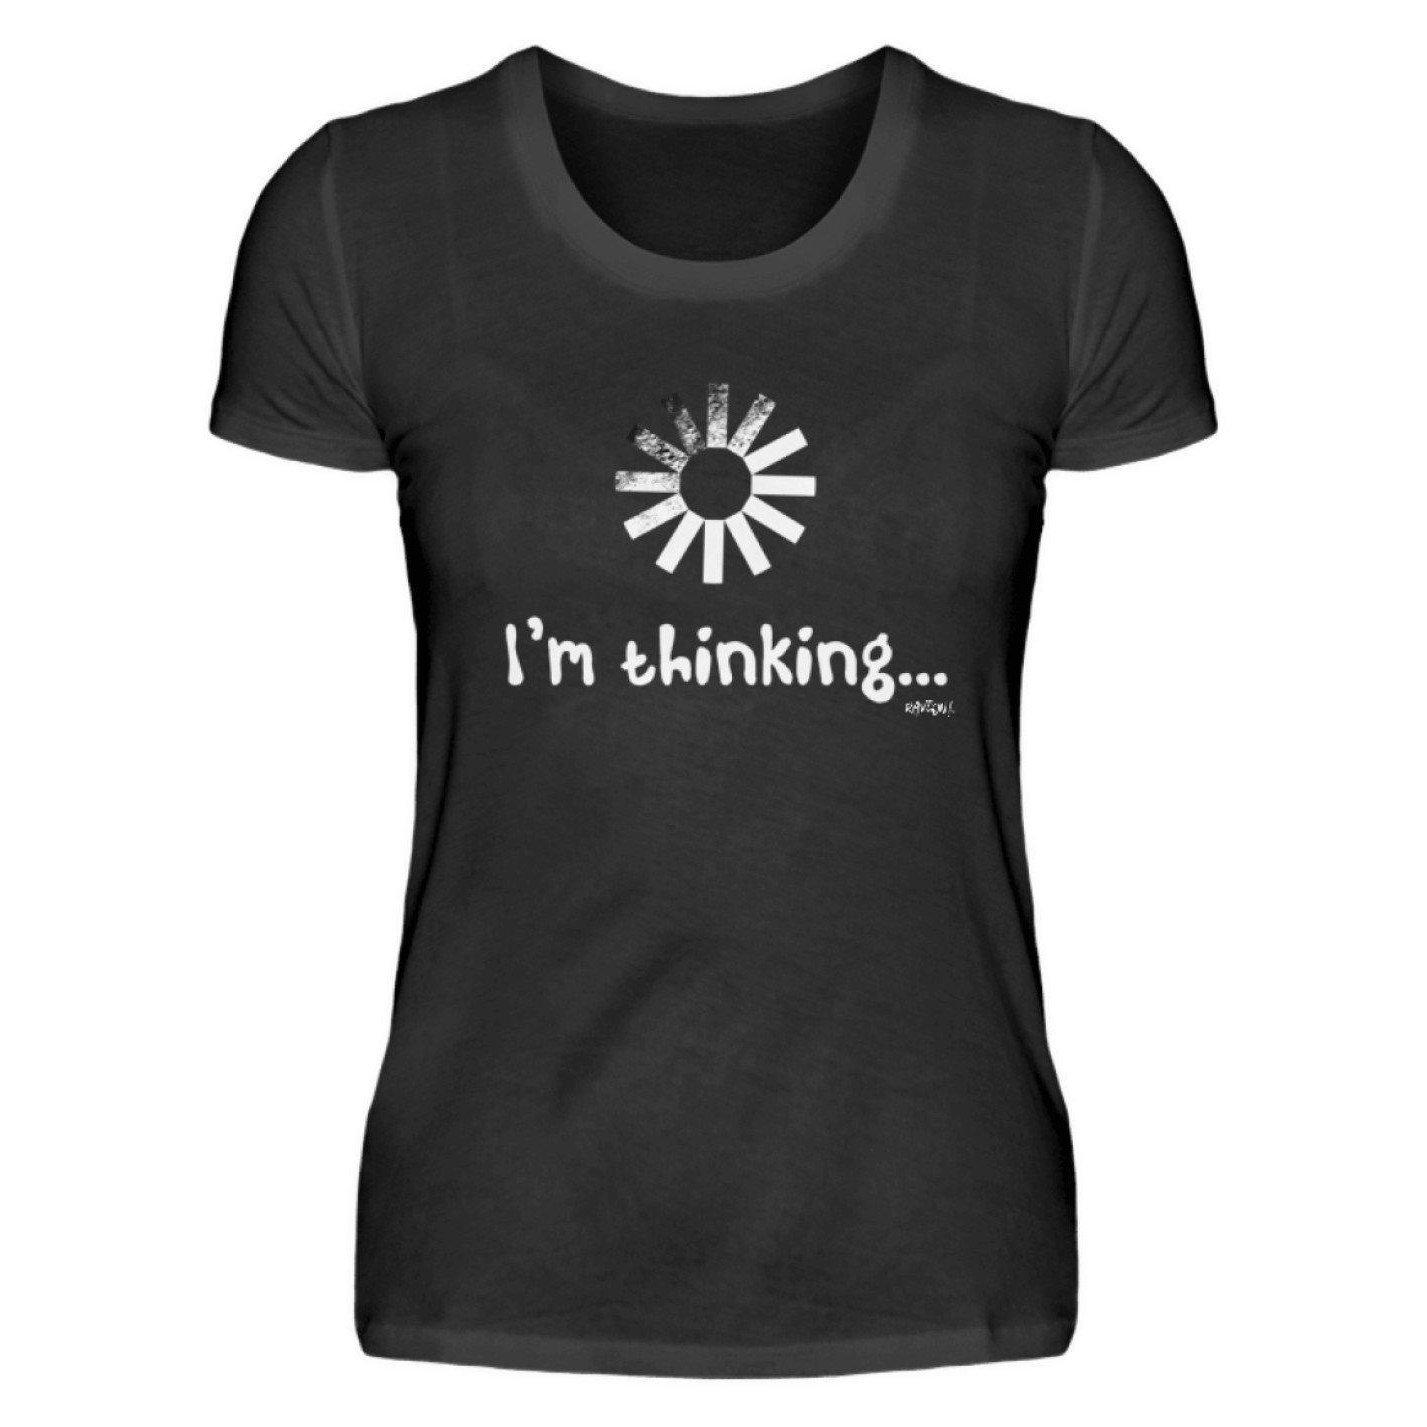 I´m thinking ... - Rave On!® - Ladies Shirt Ladies Basic T-Shirt Black / S - Rave On!® the club & techno scene shop for cool young fashion streetwear style & fashion outfits + sexy festival 420 stuff